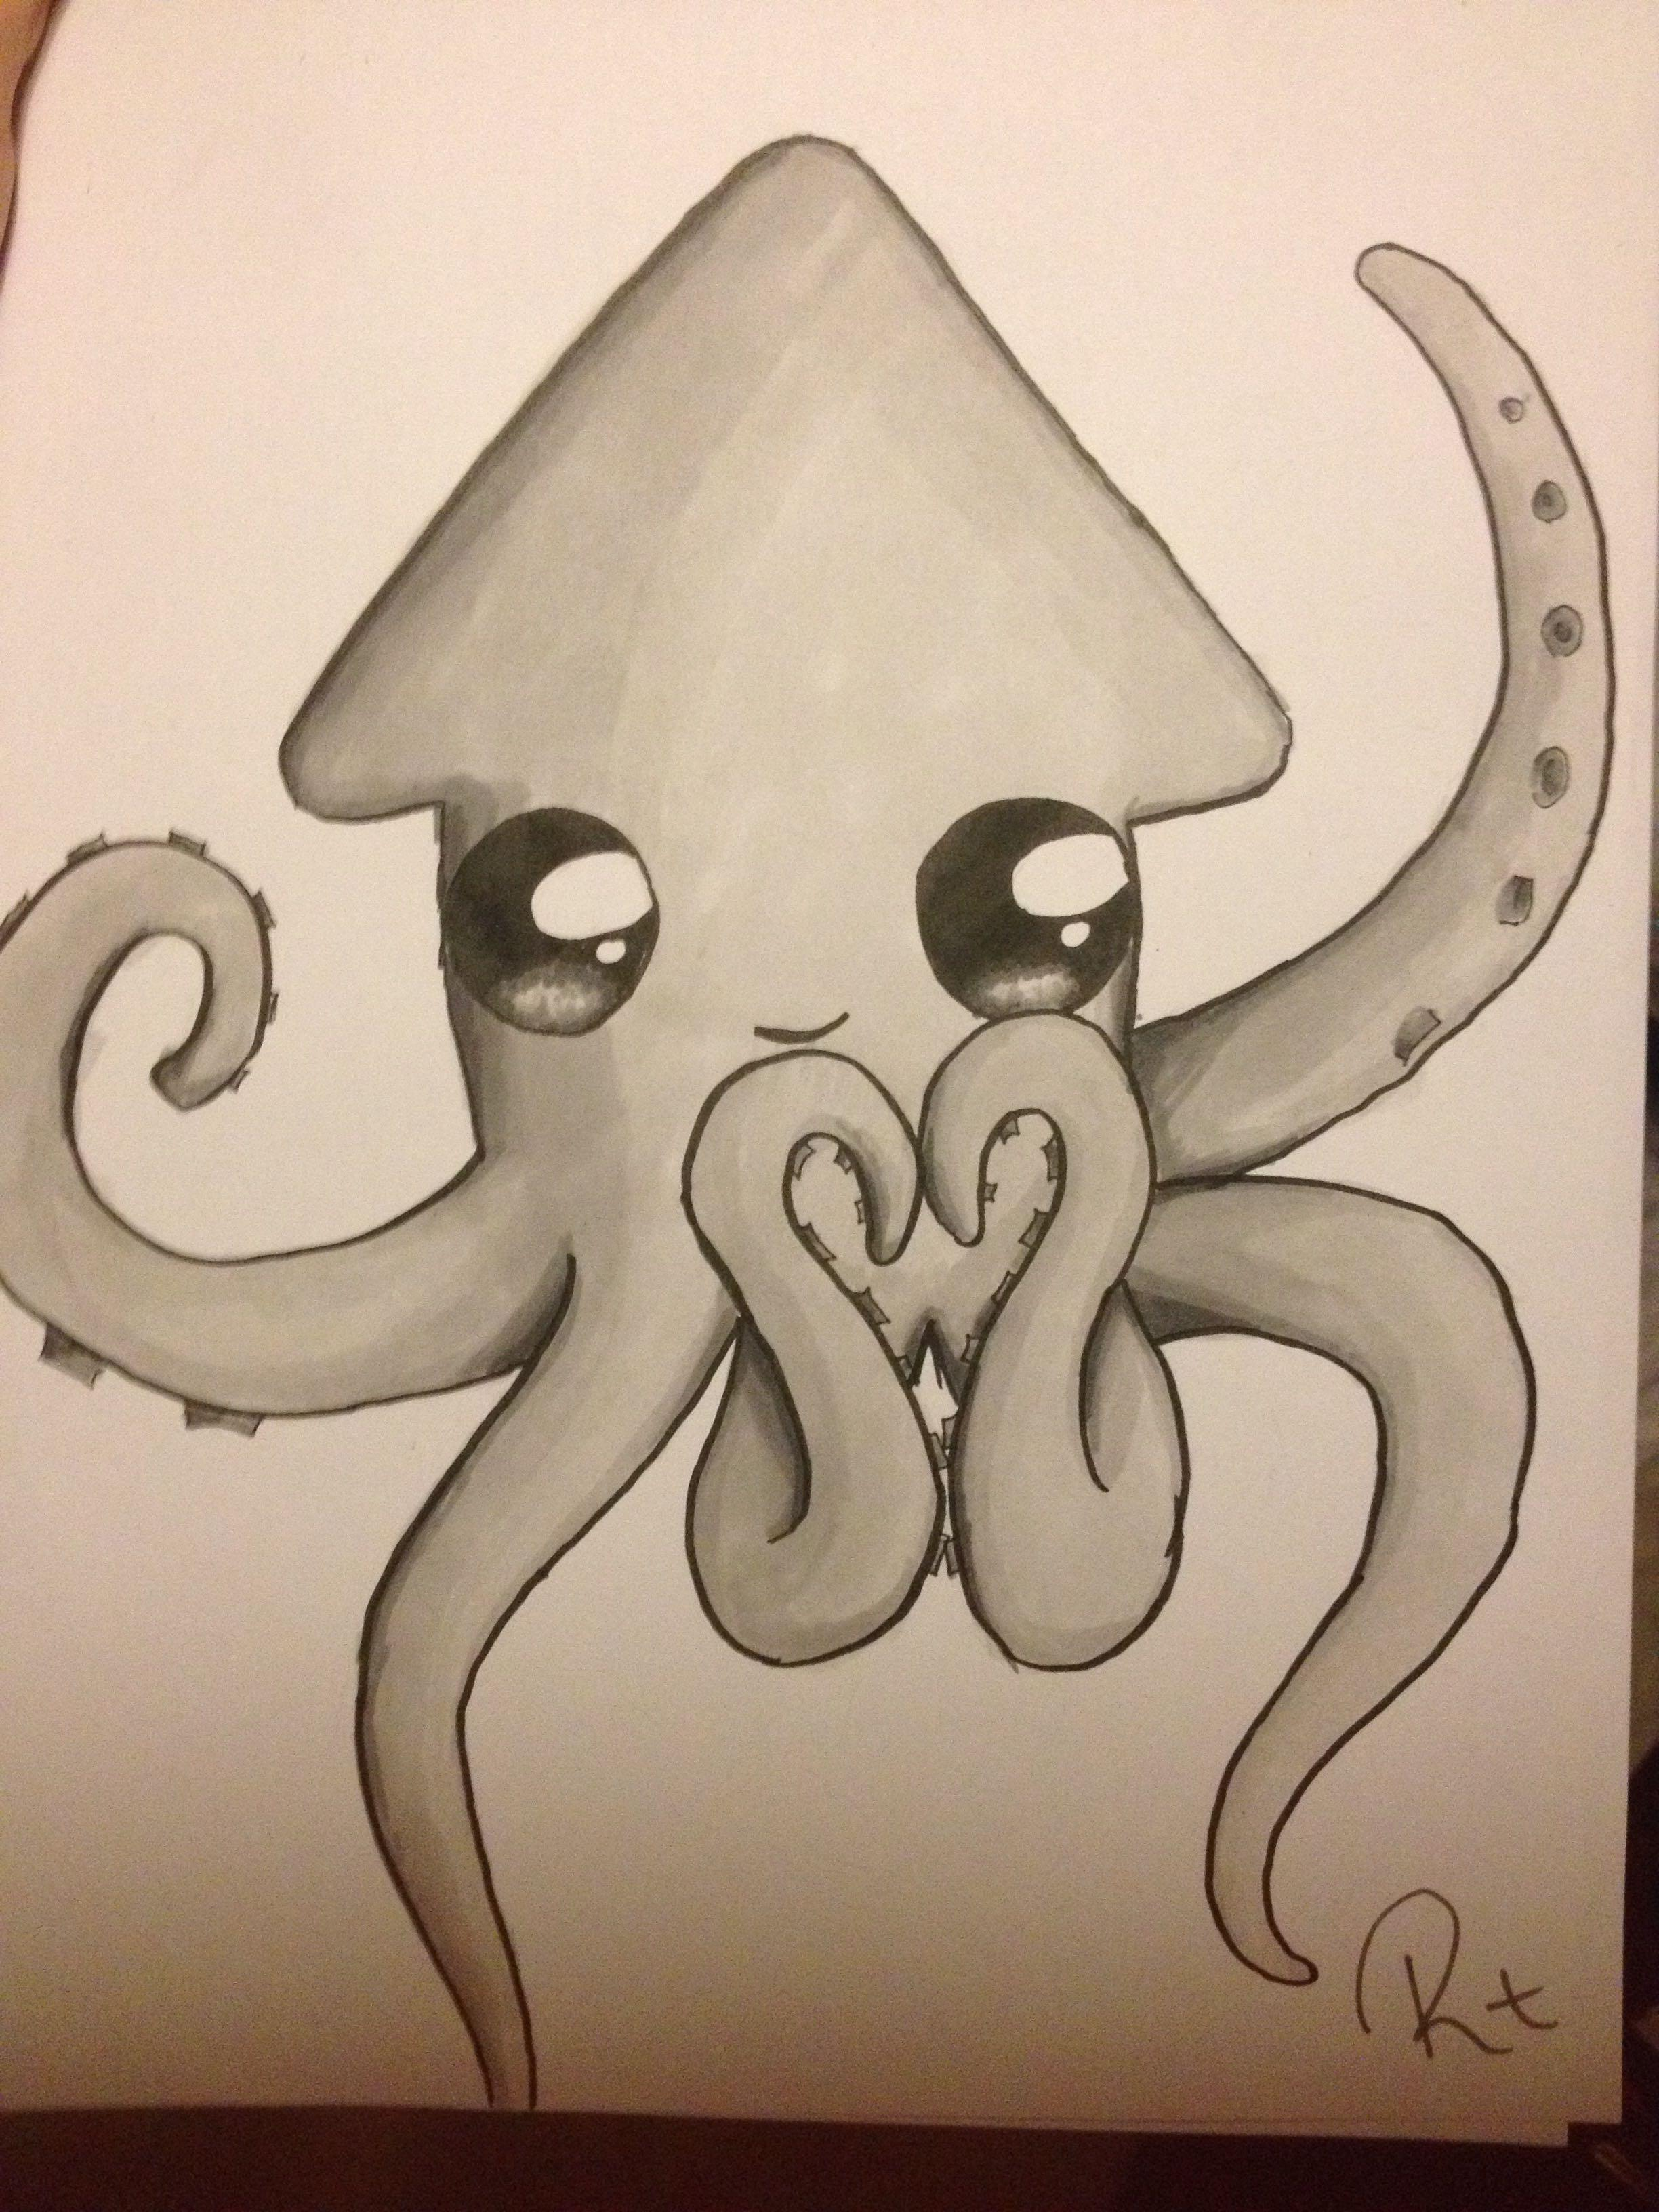 Drawn squid squid monster  My Luv Squiddy Sydney